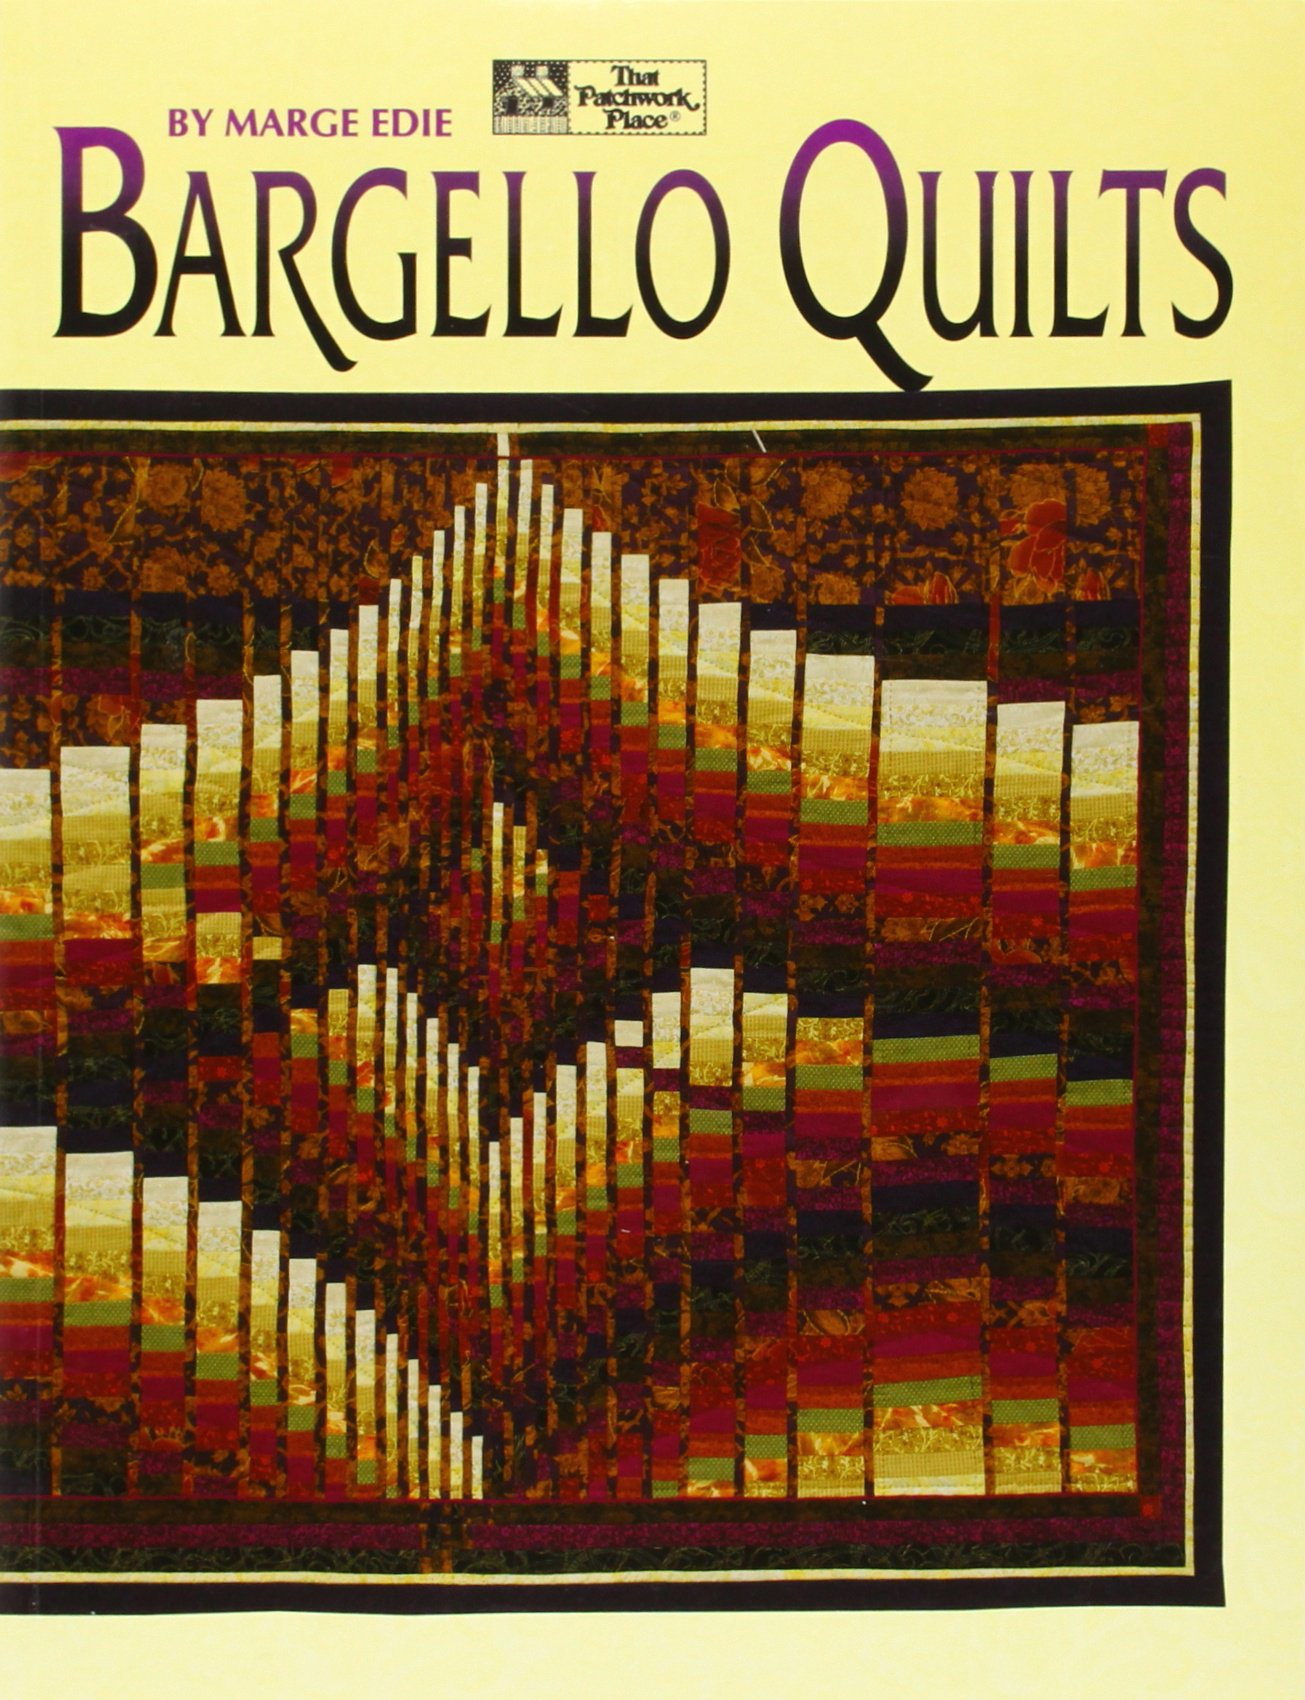 Bargello Quilts: Marge Edie: 0744527101948: Amazon com: Books